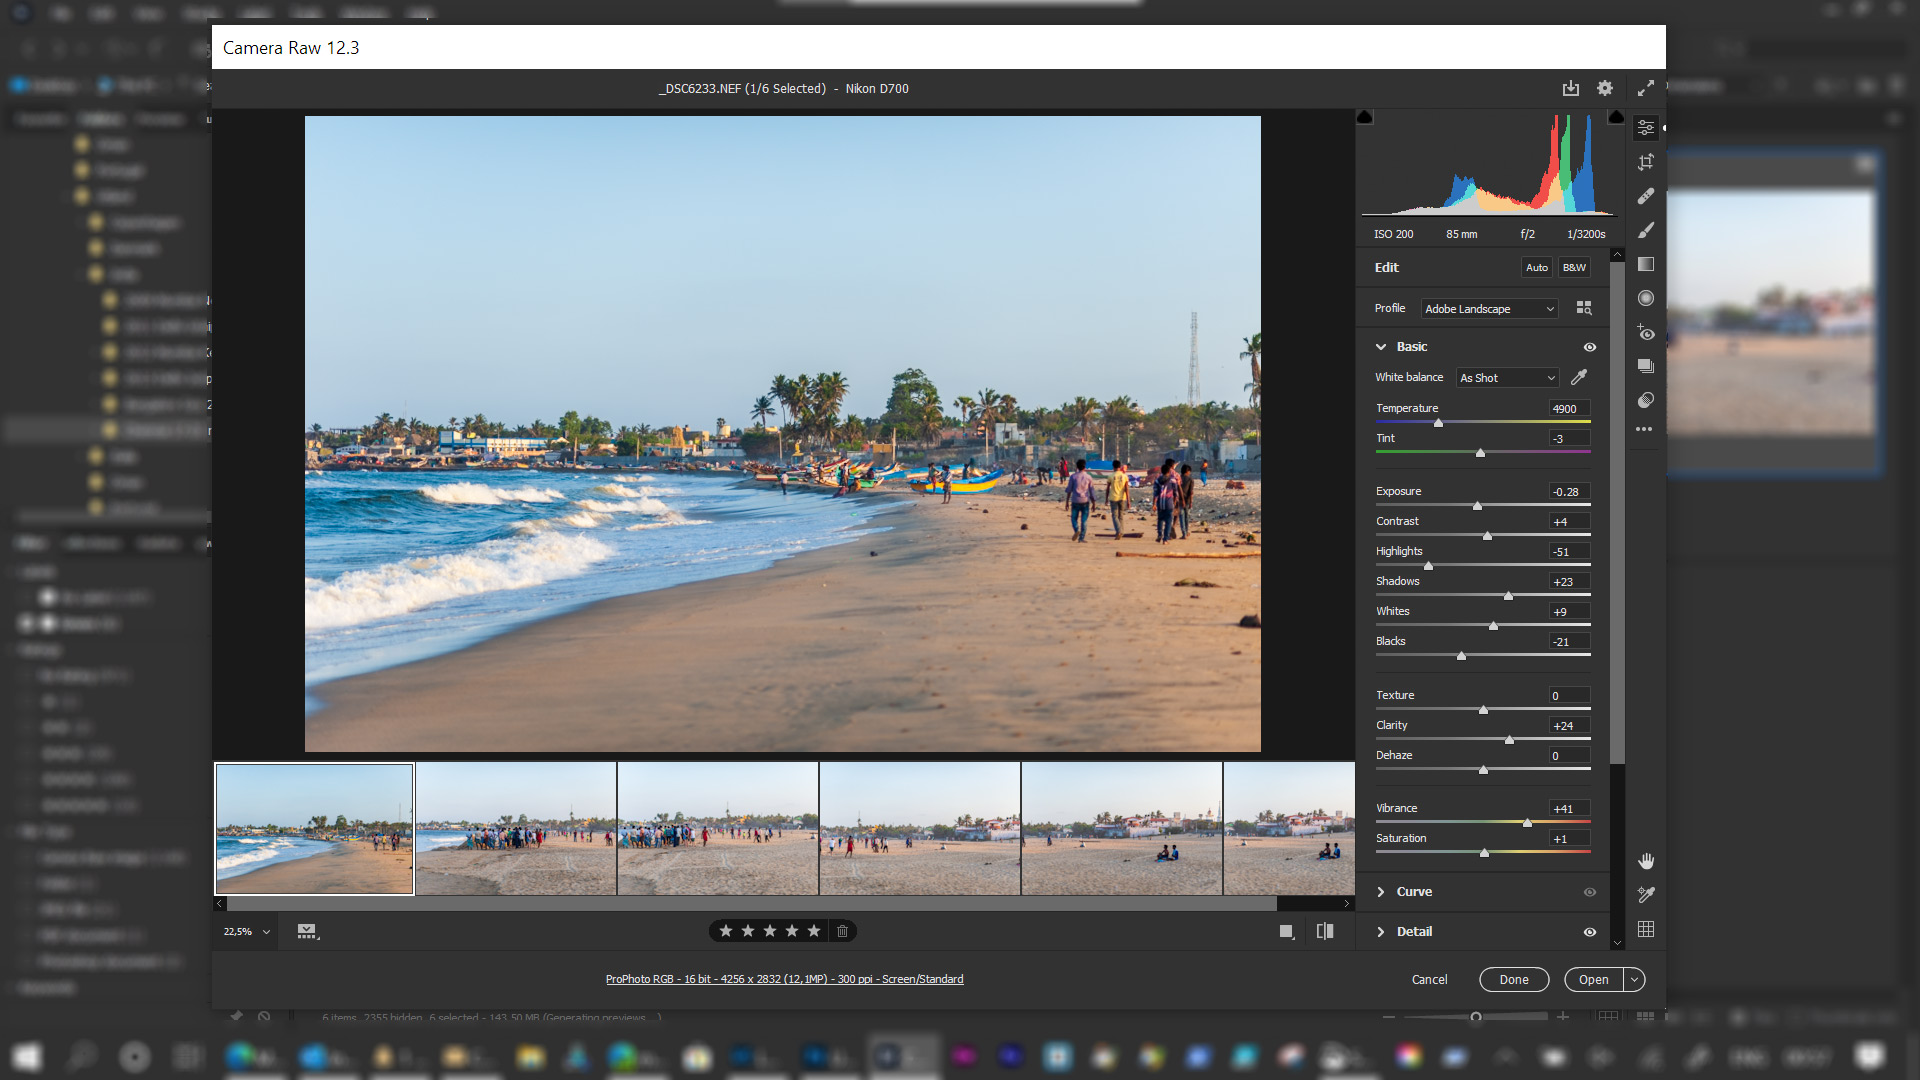 Step 1: Open images in Adobe Camera Raw for adjustments and sync settings to all images.